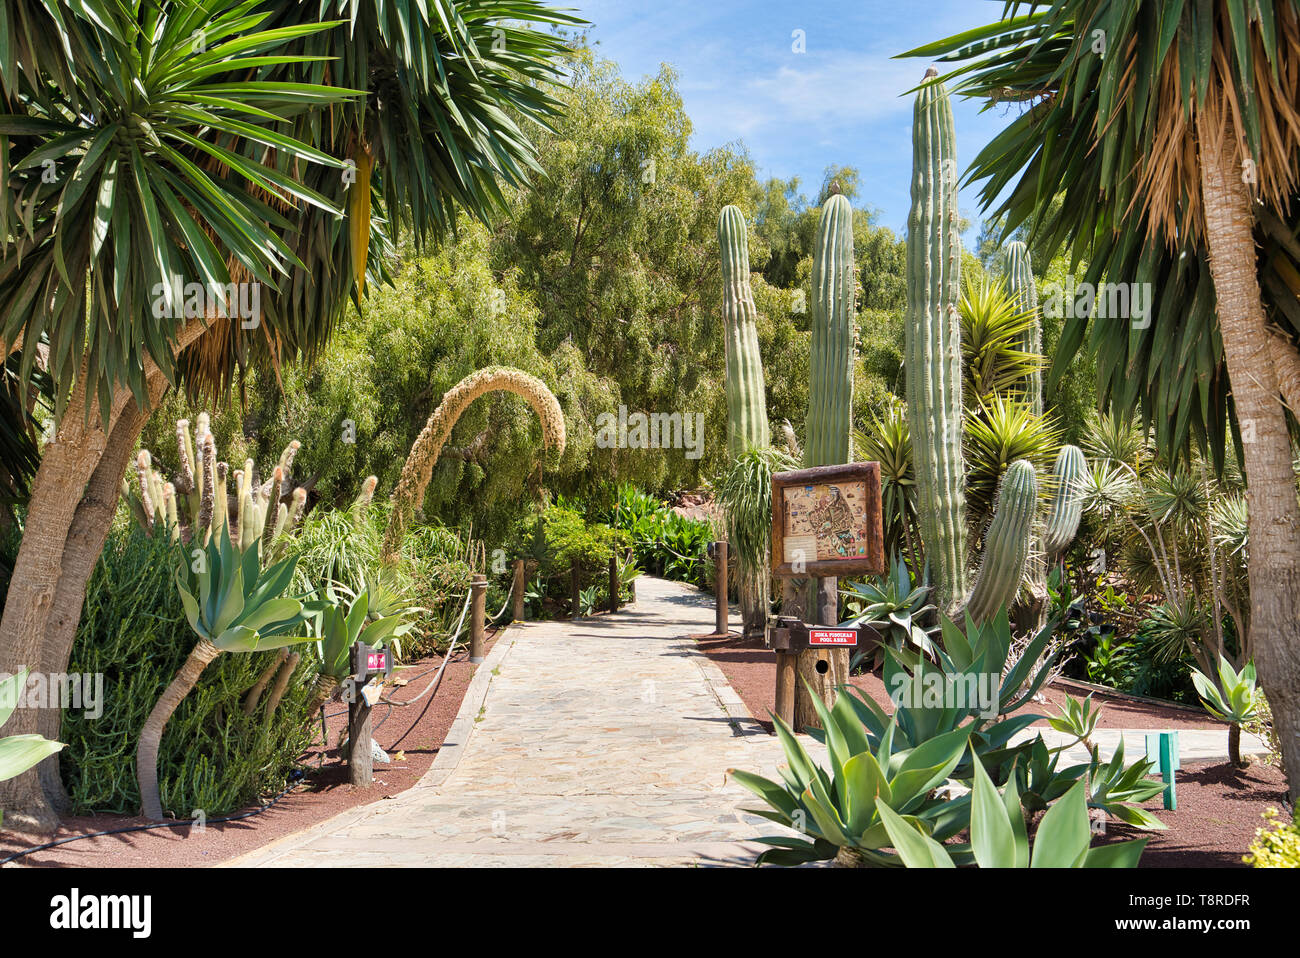 LANZAROTE, CANARY ISLANDS, SPAIN - APRIL 15, 2019: High cacti, palm trees and other tropical vegetation against a blue sky. Themed Rancho Texas Park o Stock Photo